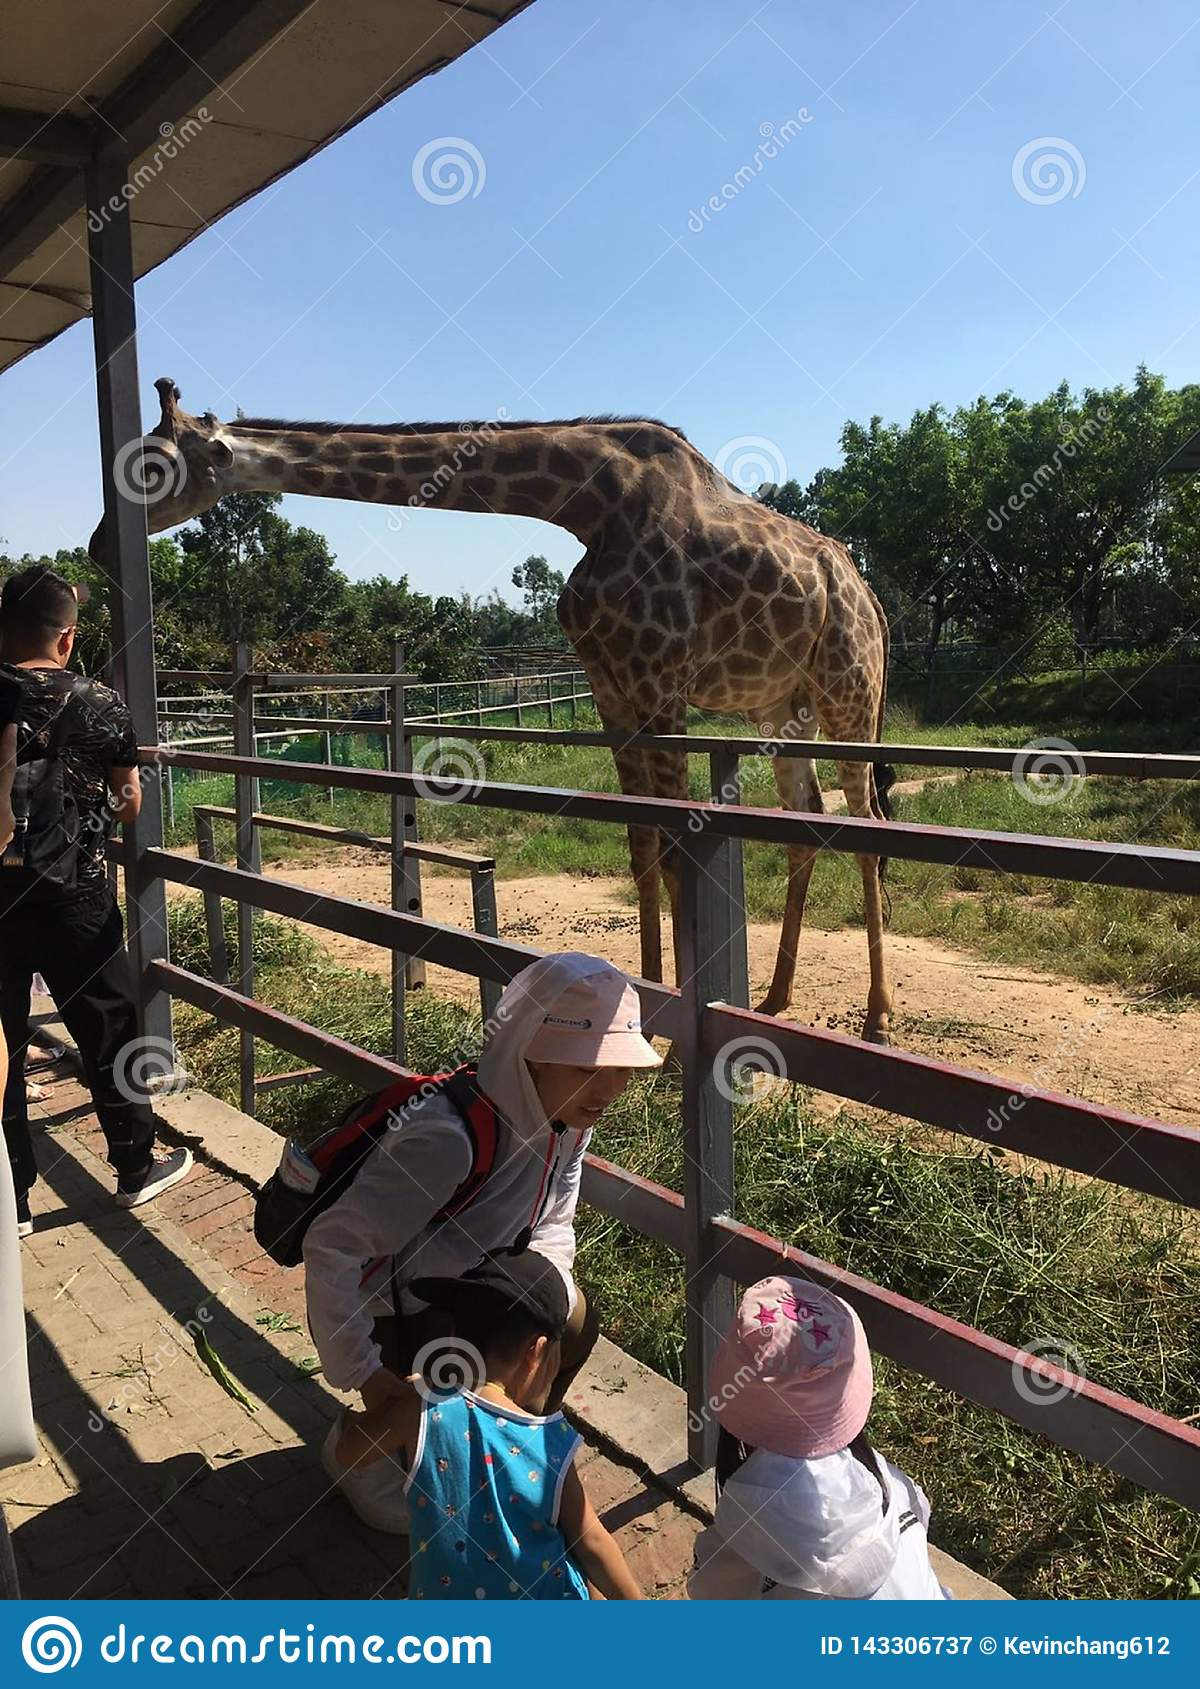 The tourists are feeding the giraffes at the zoo